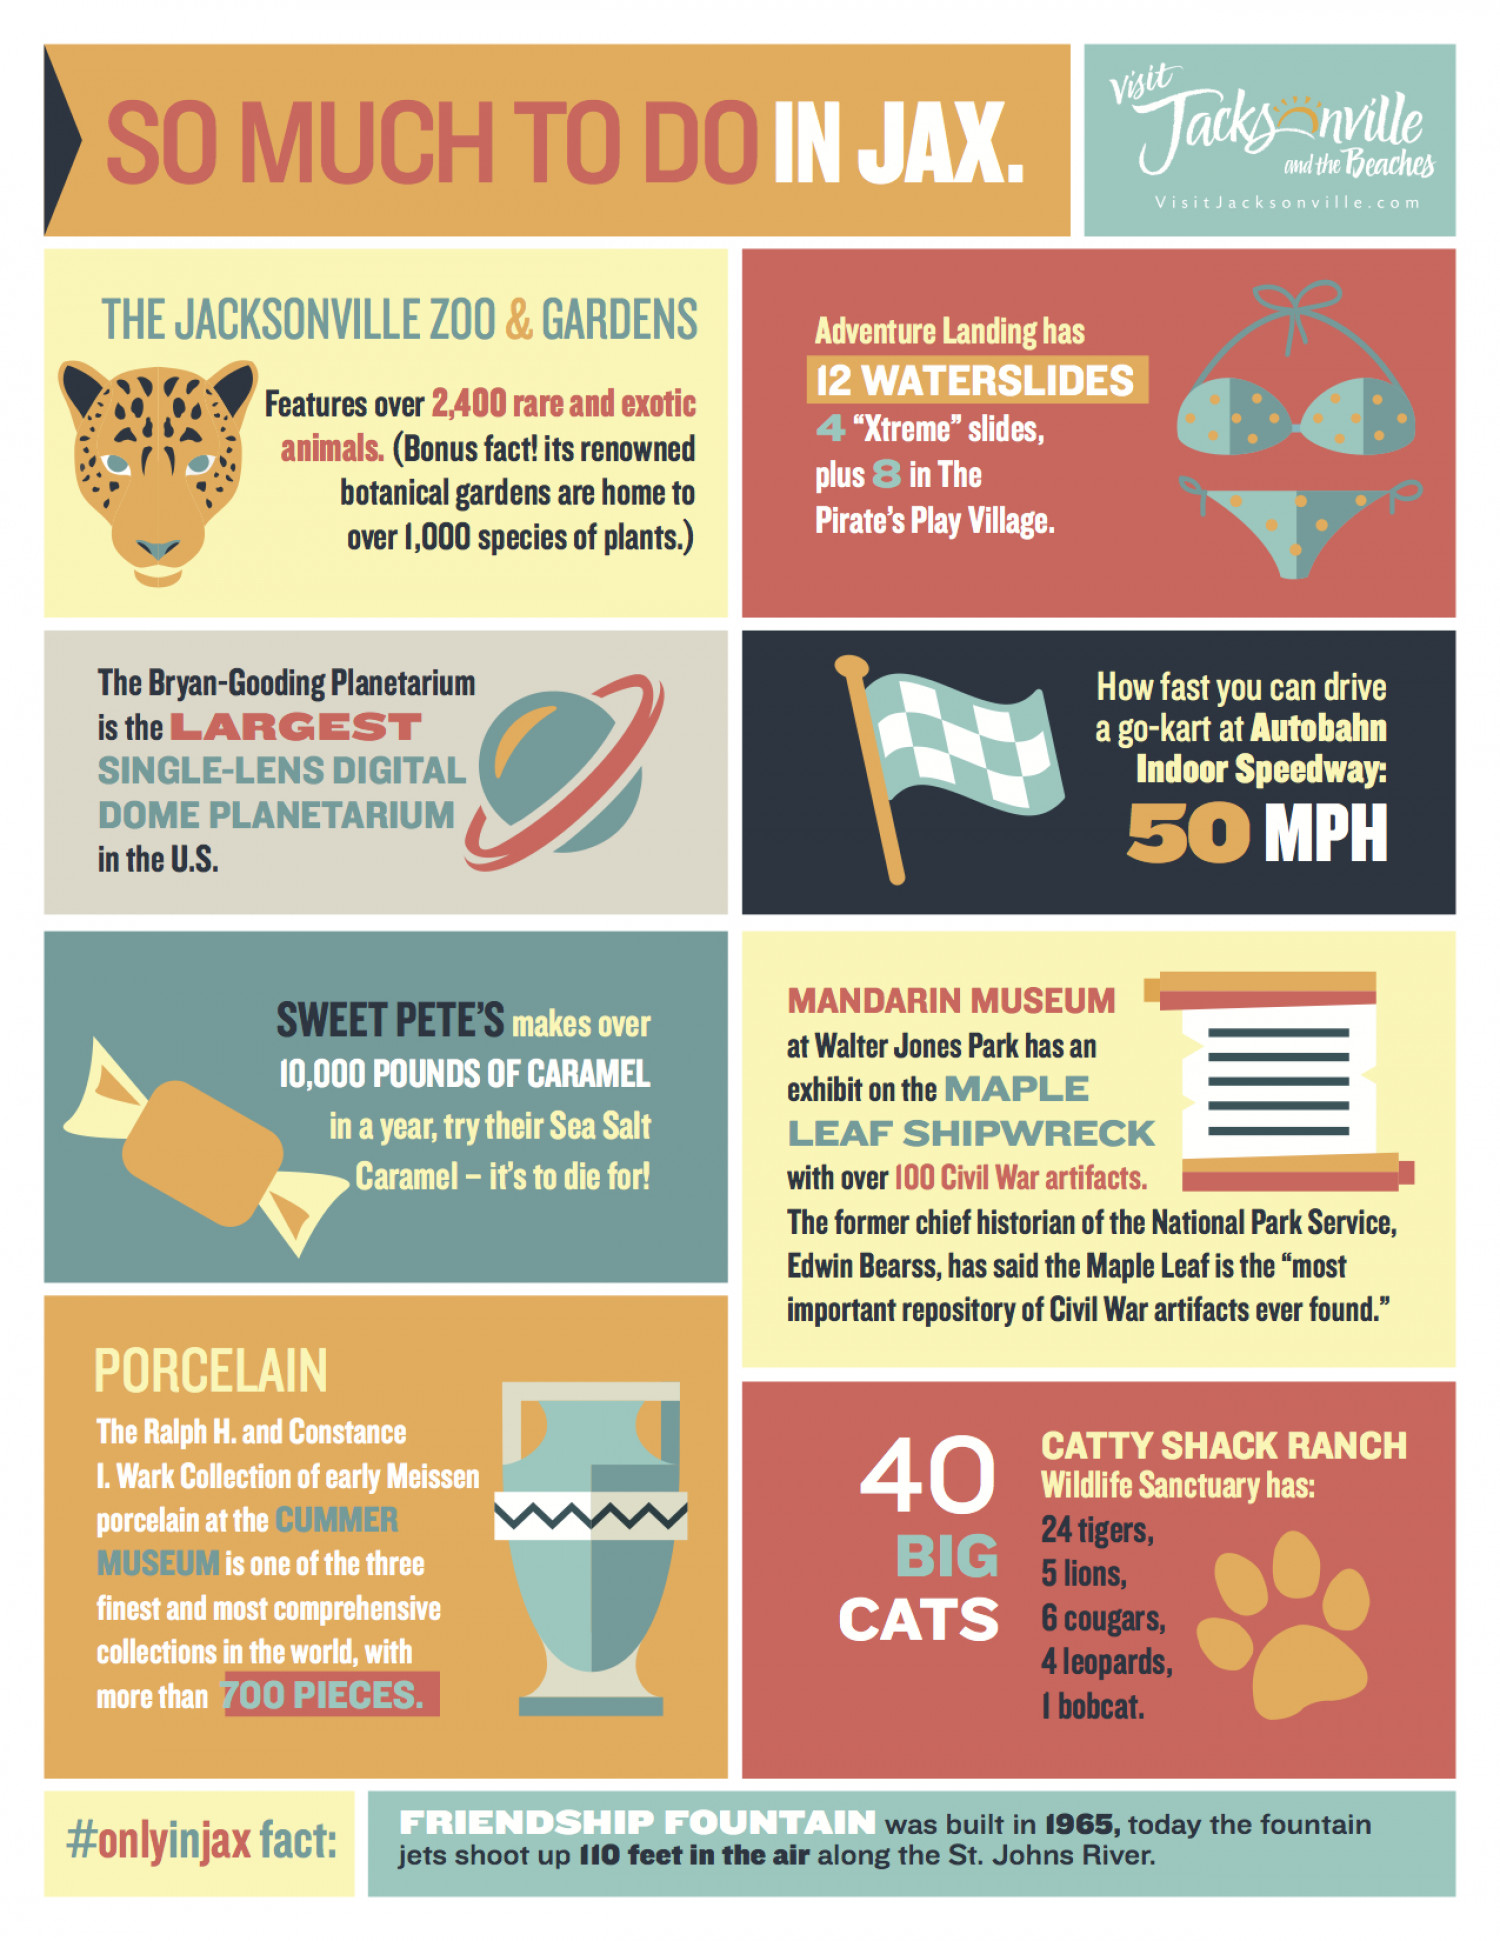 So Much To Do in Jax Part One Infographic